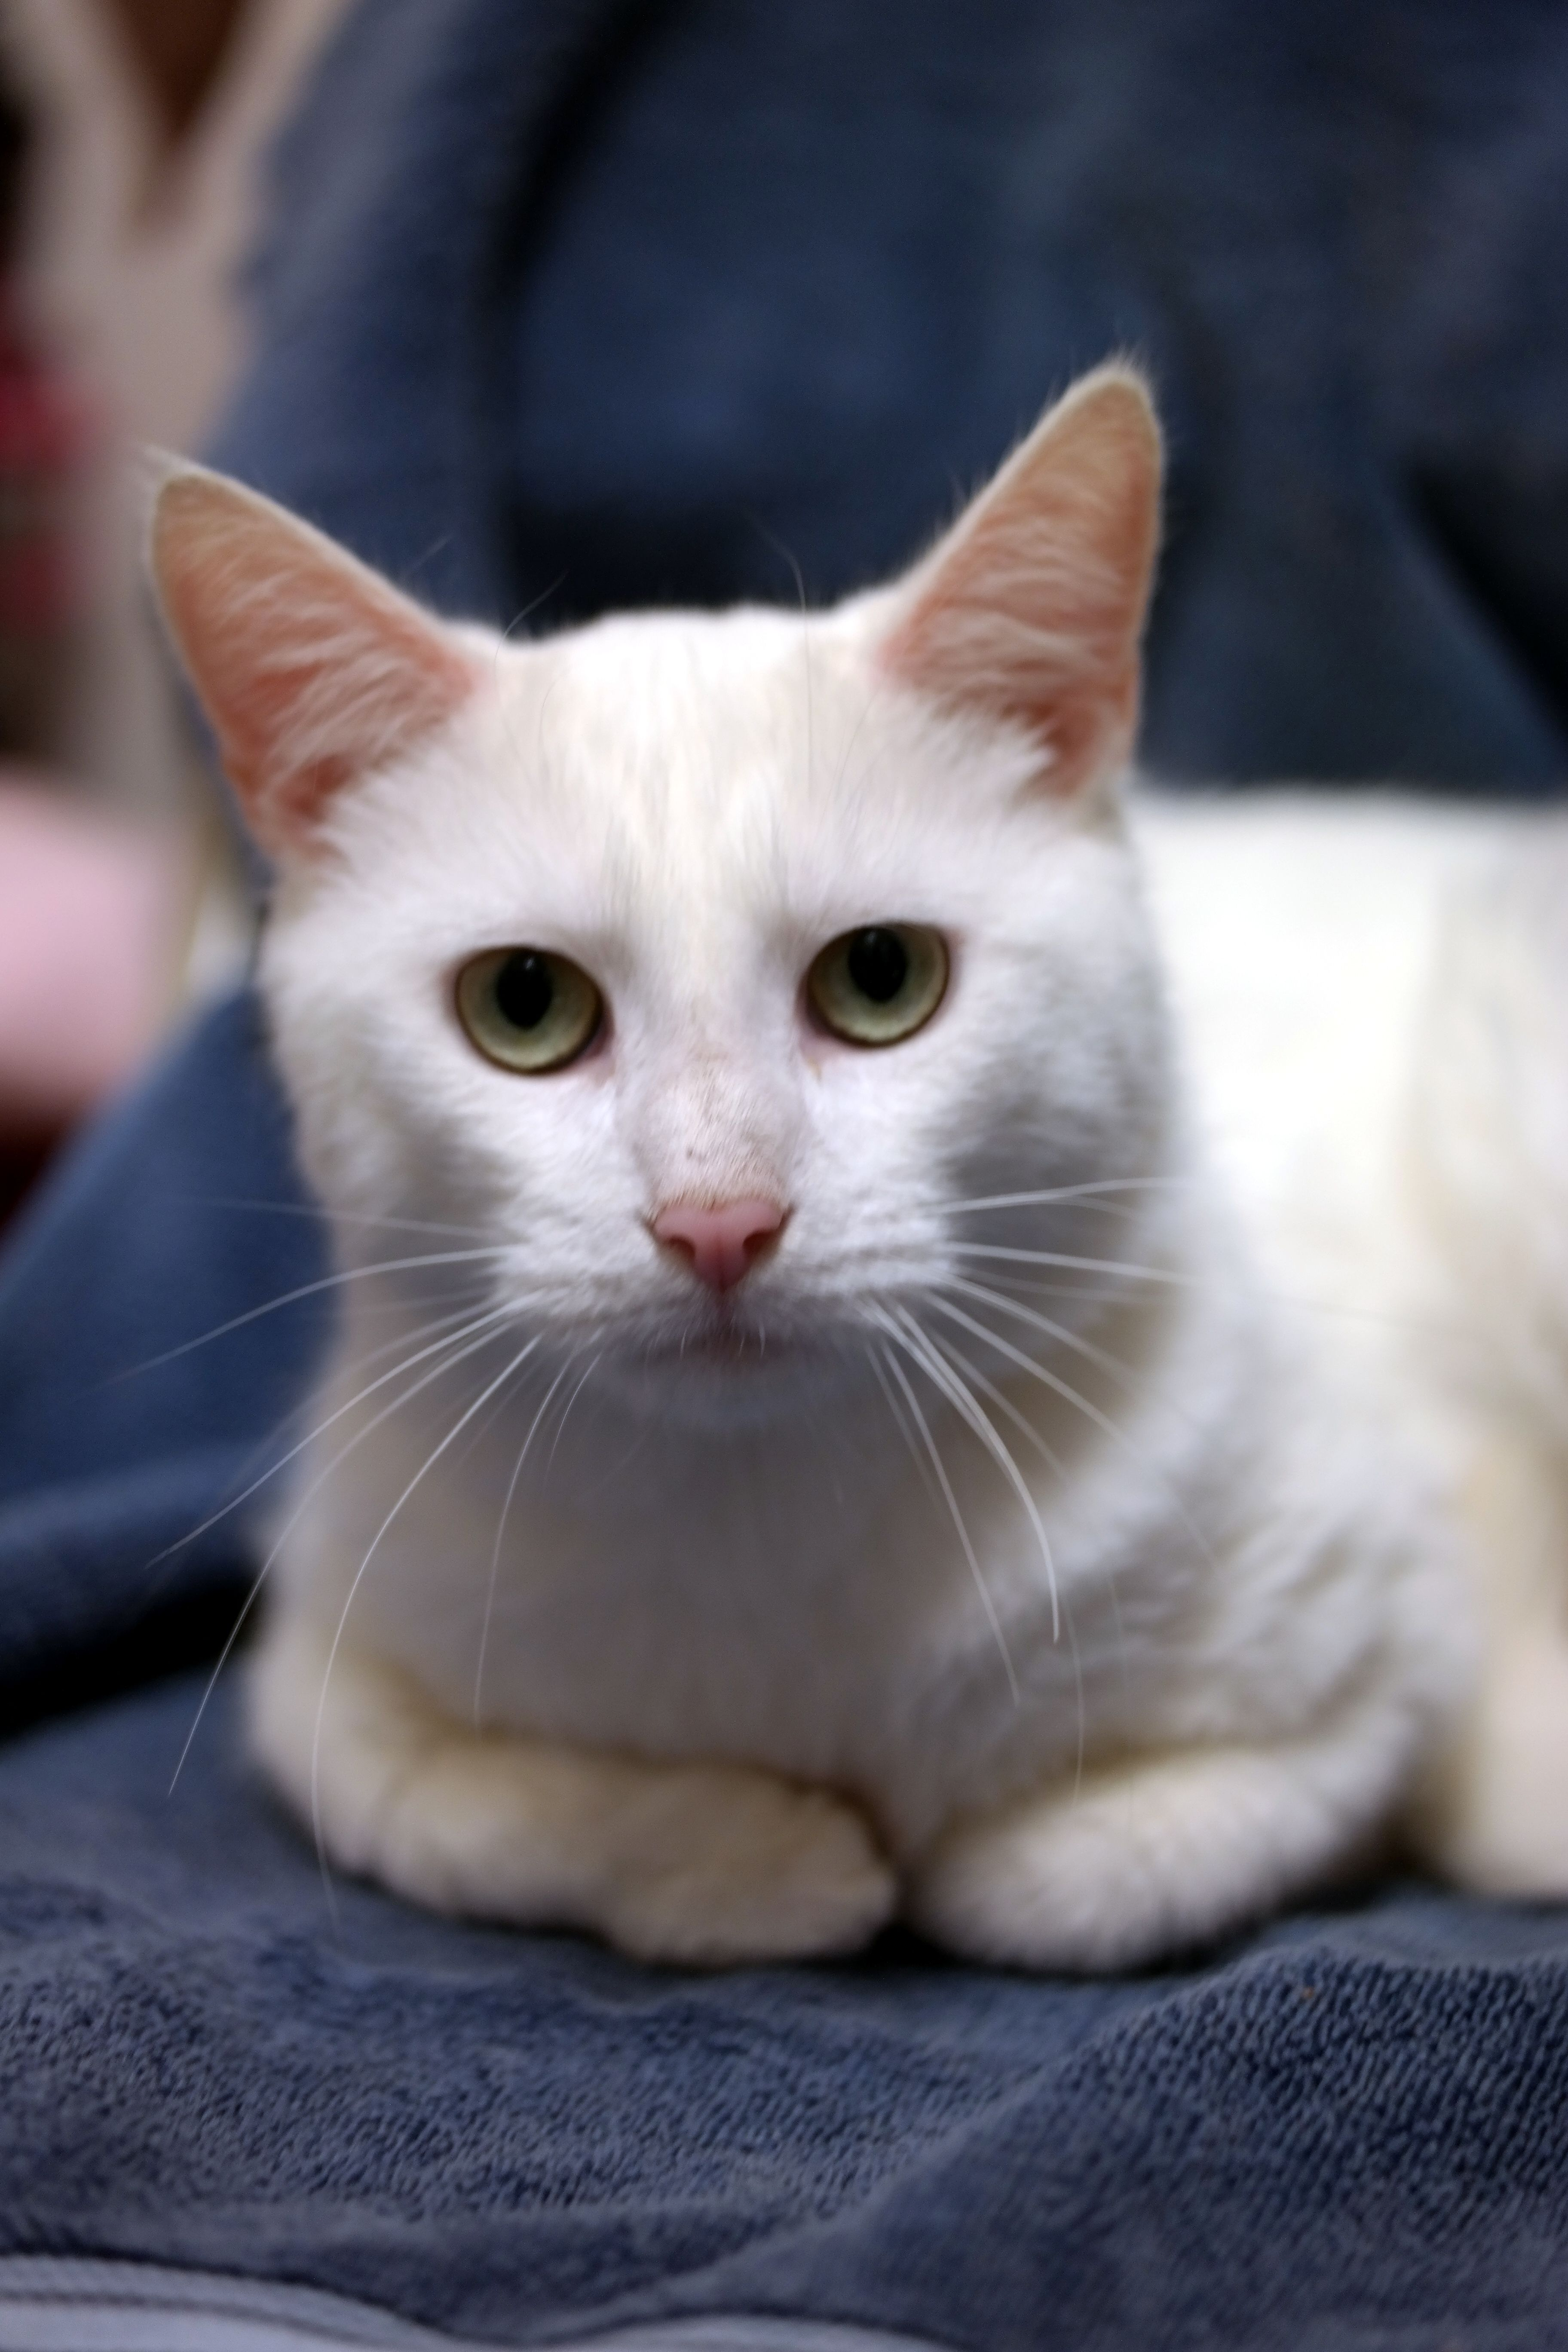 b191742c19 Blizzard is an adoptable Cat - Turkish Angora Mix searching for a forever  family near Warren